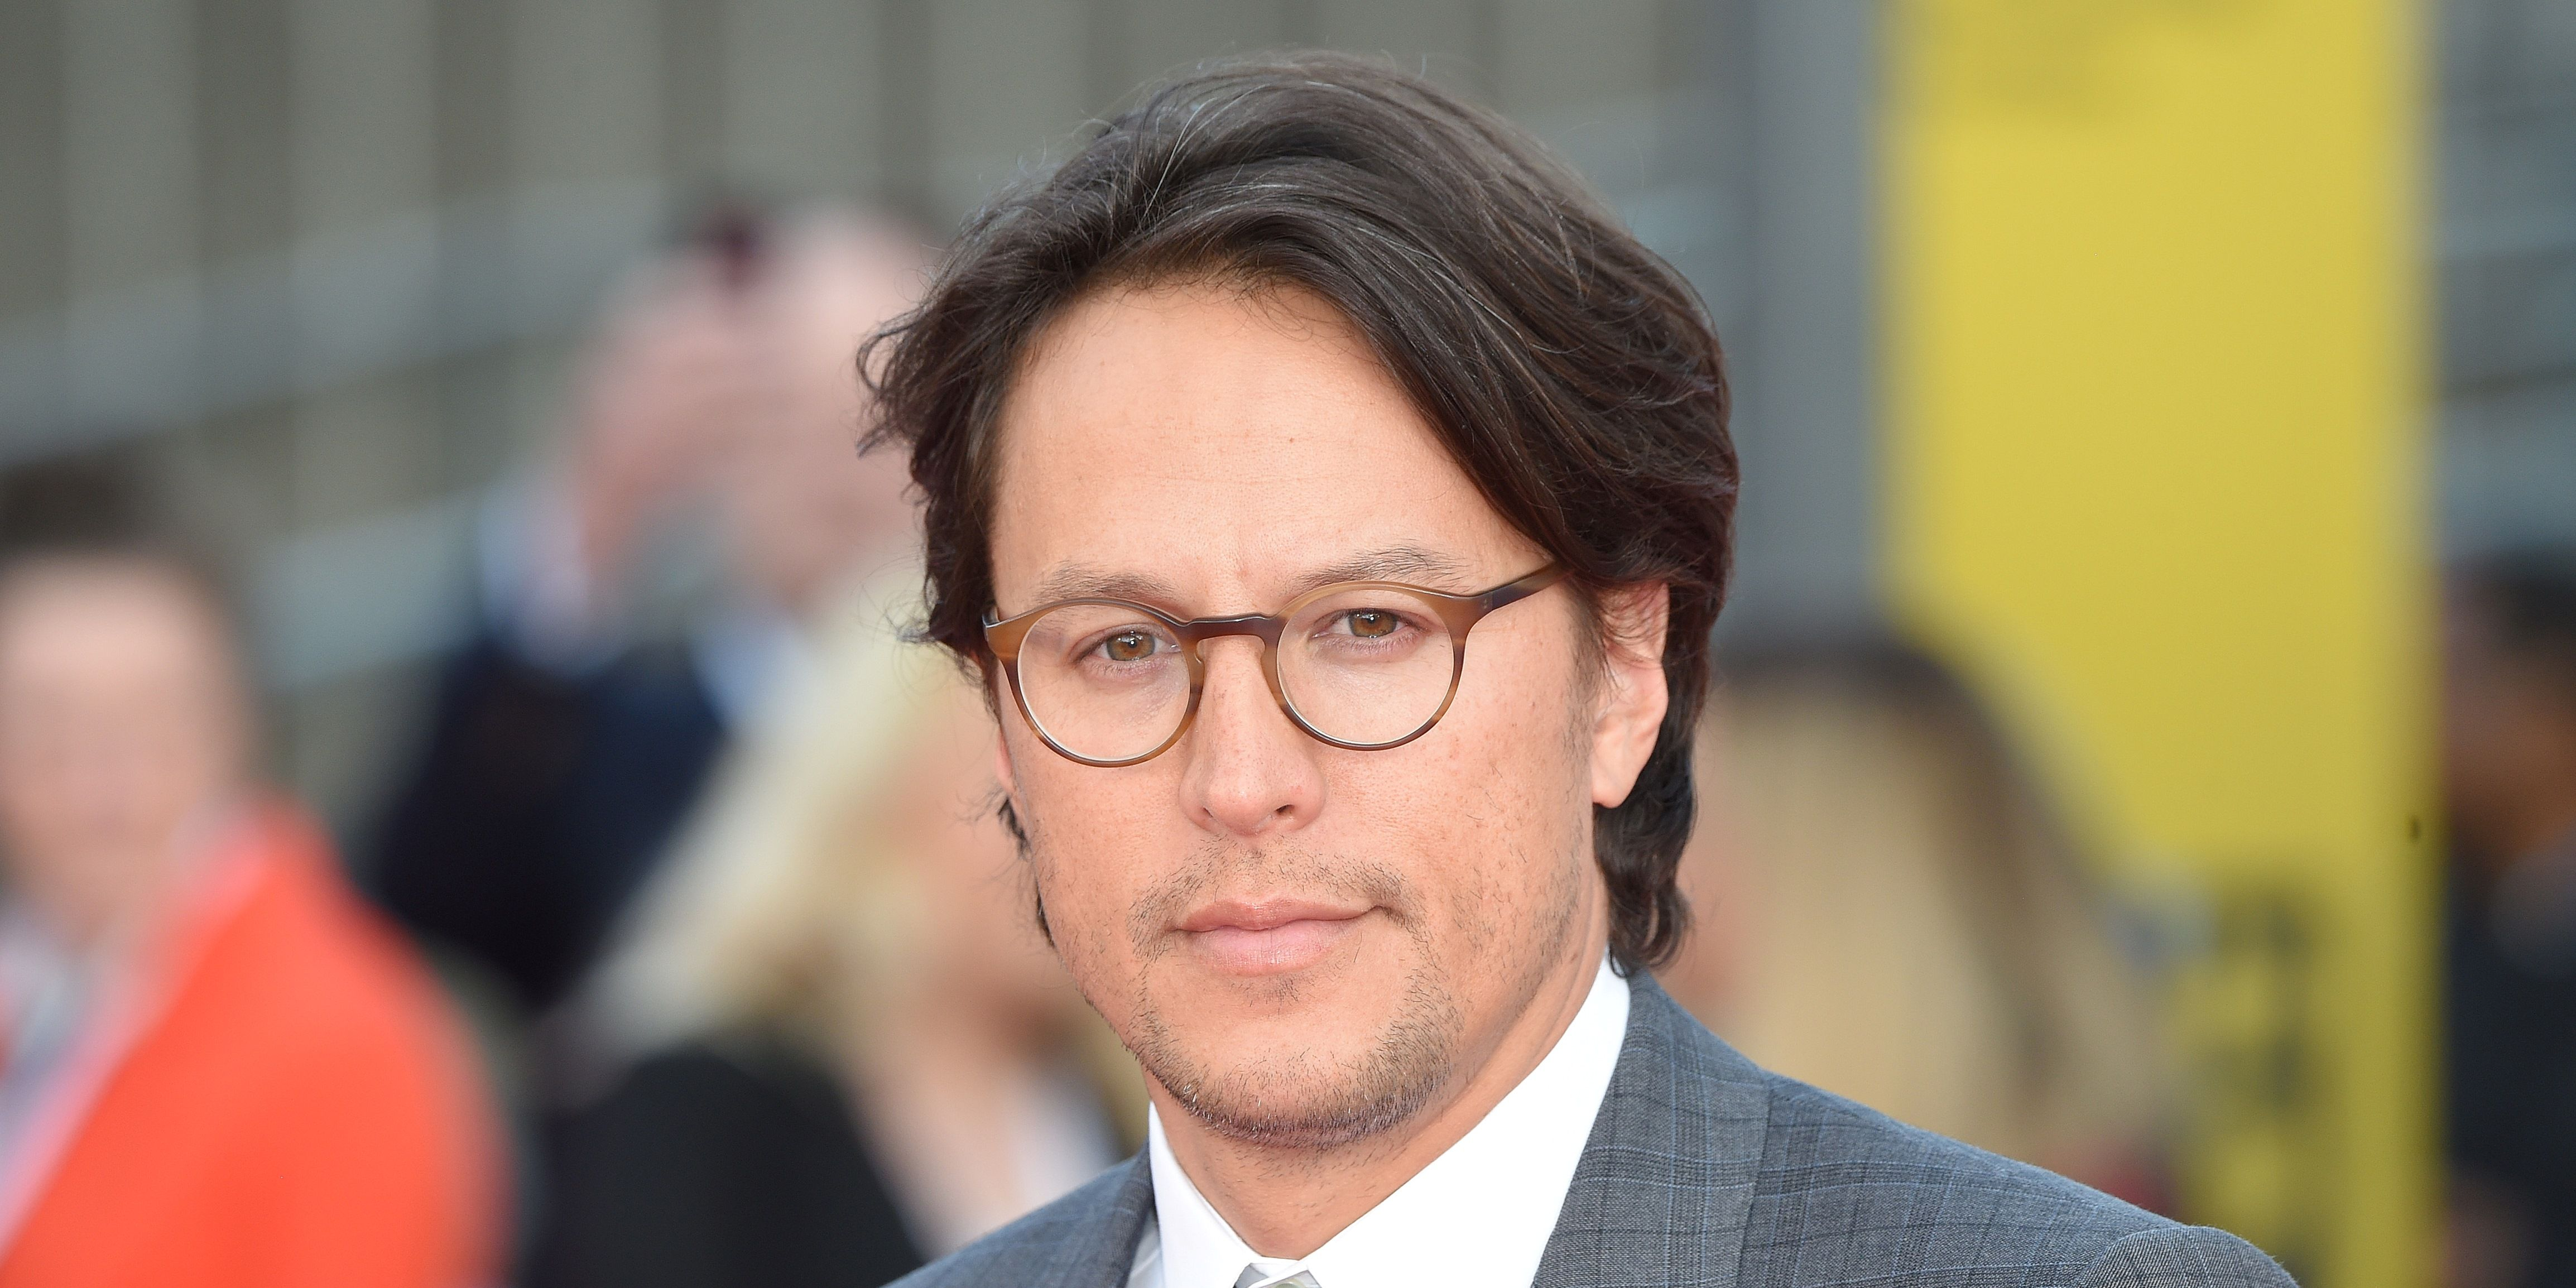 New Bond Director Cary Fukunaga Talks 007 For The First Time